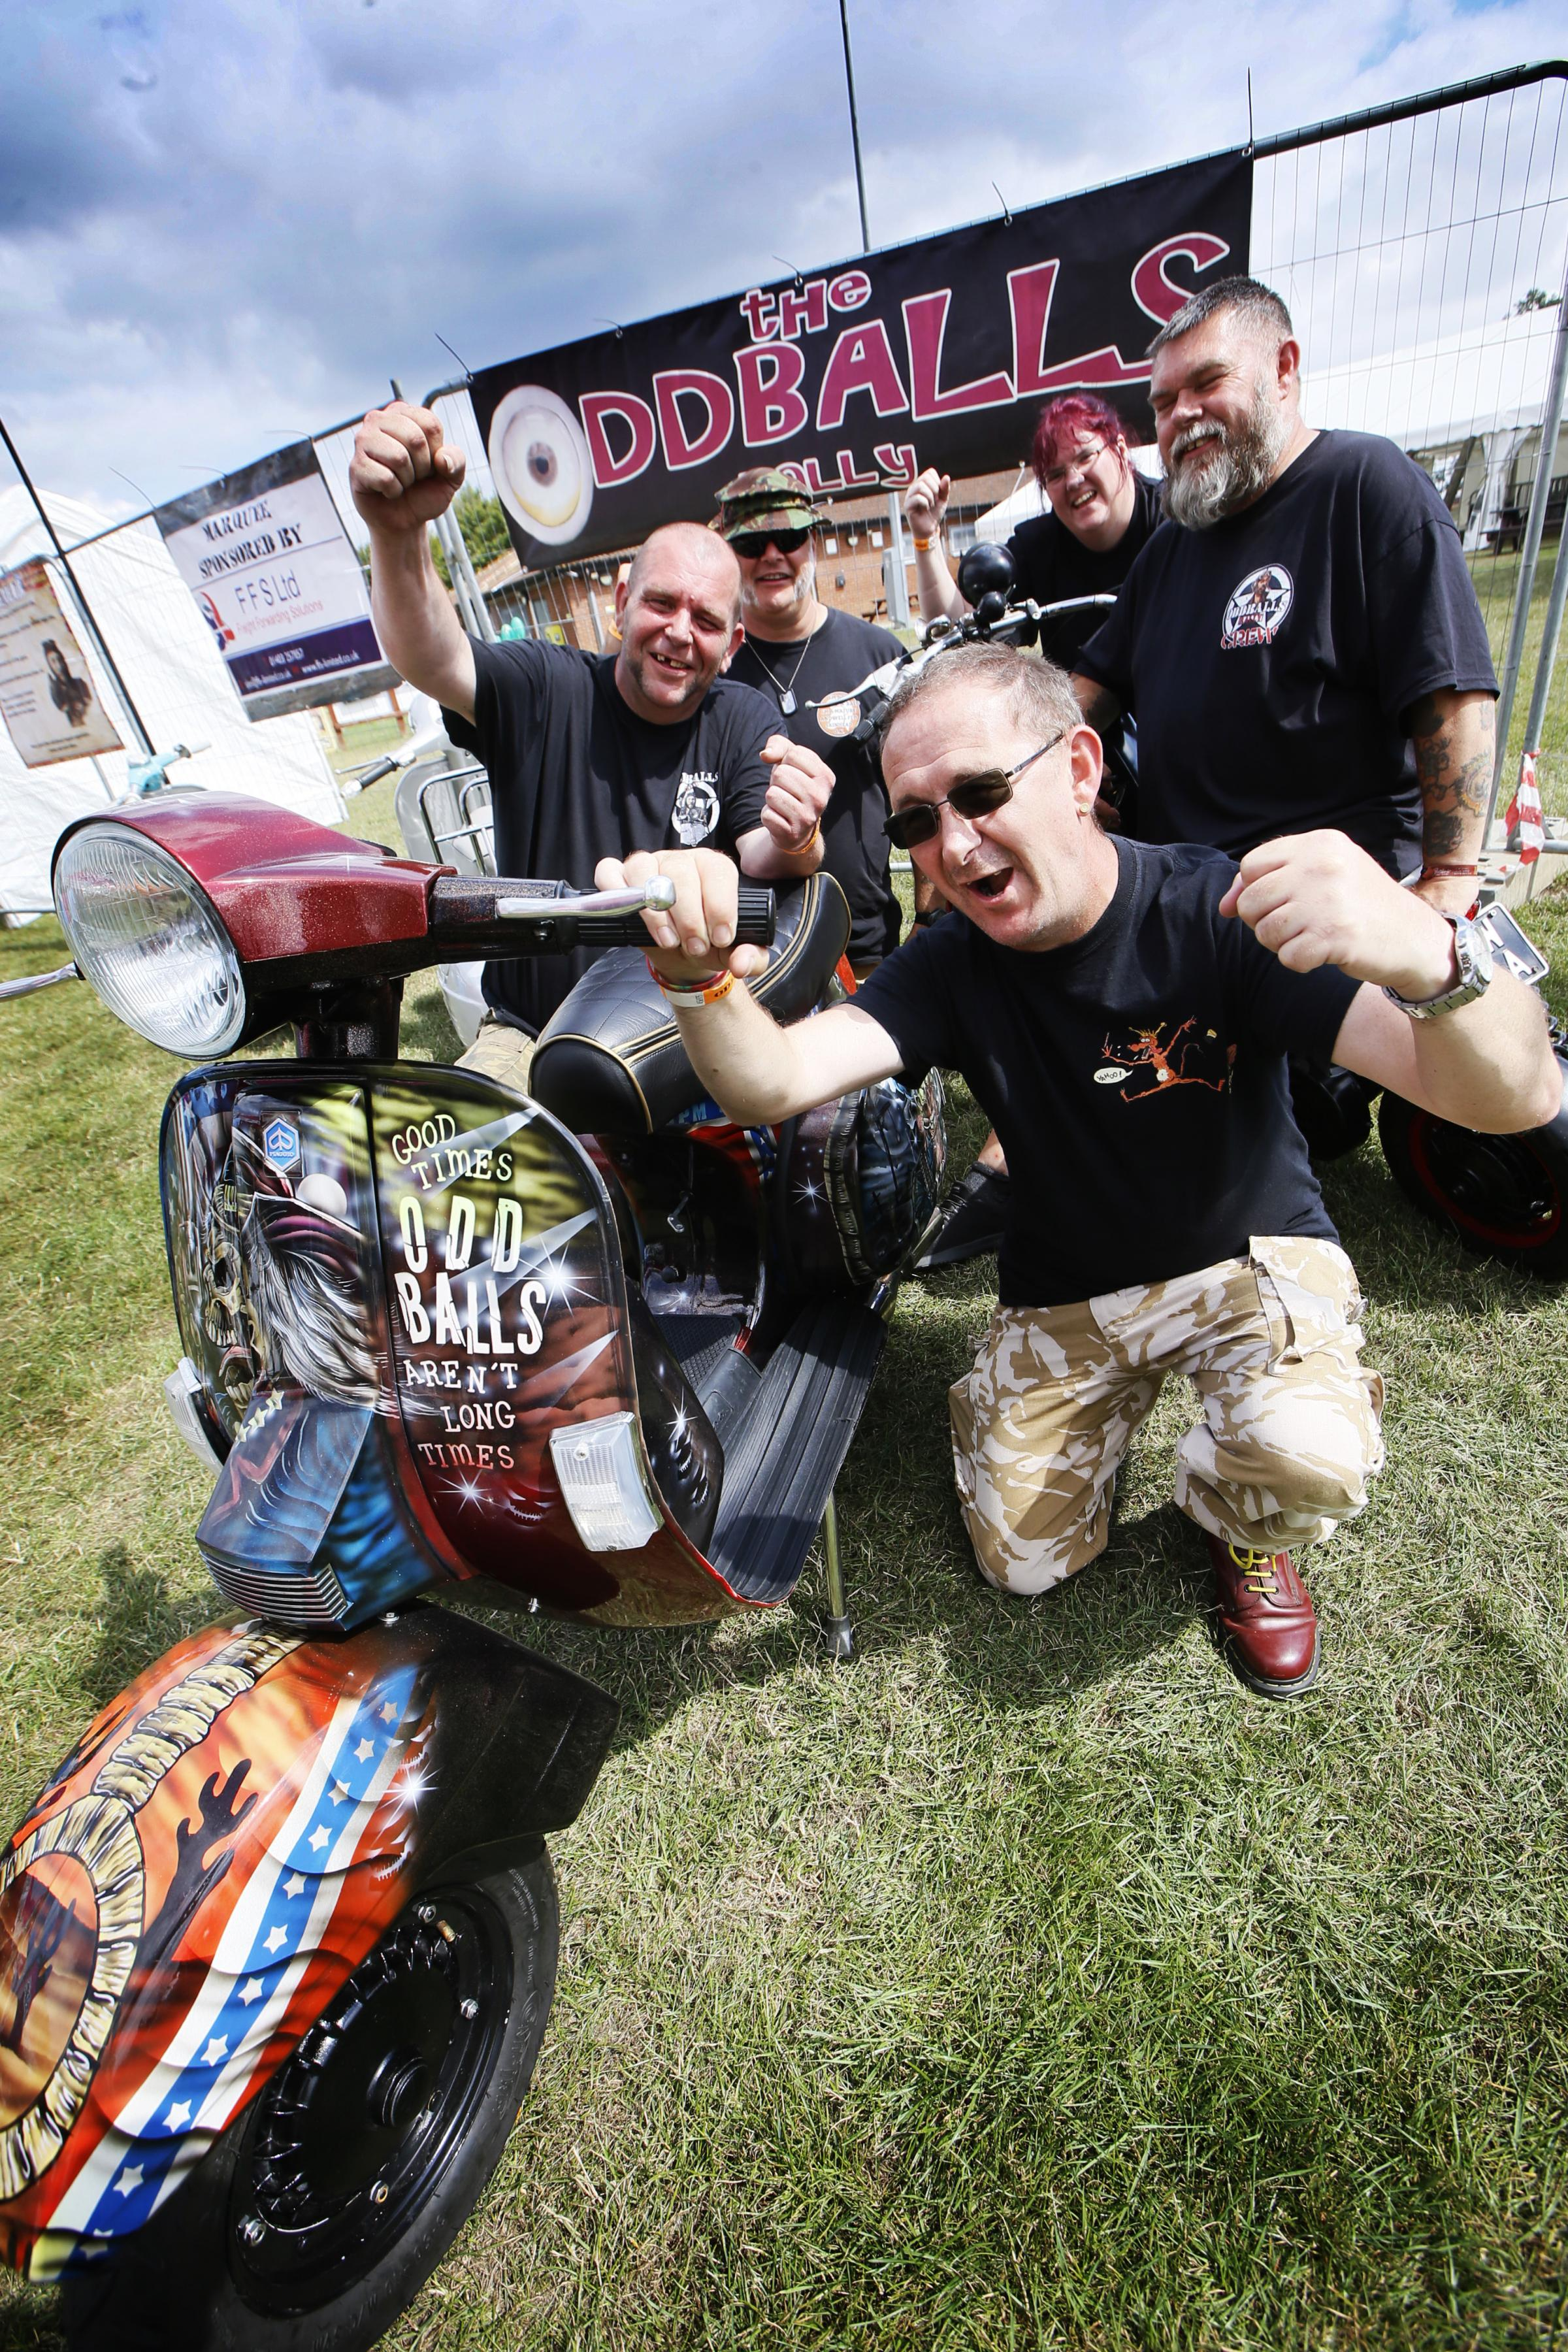 Oddballs Rally 2019 - Pictures of Abingdon's scooter spectacle